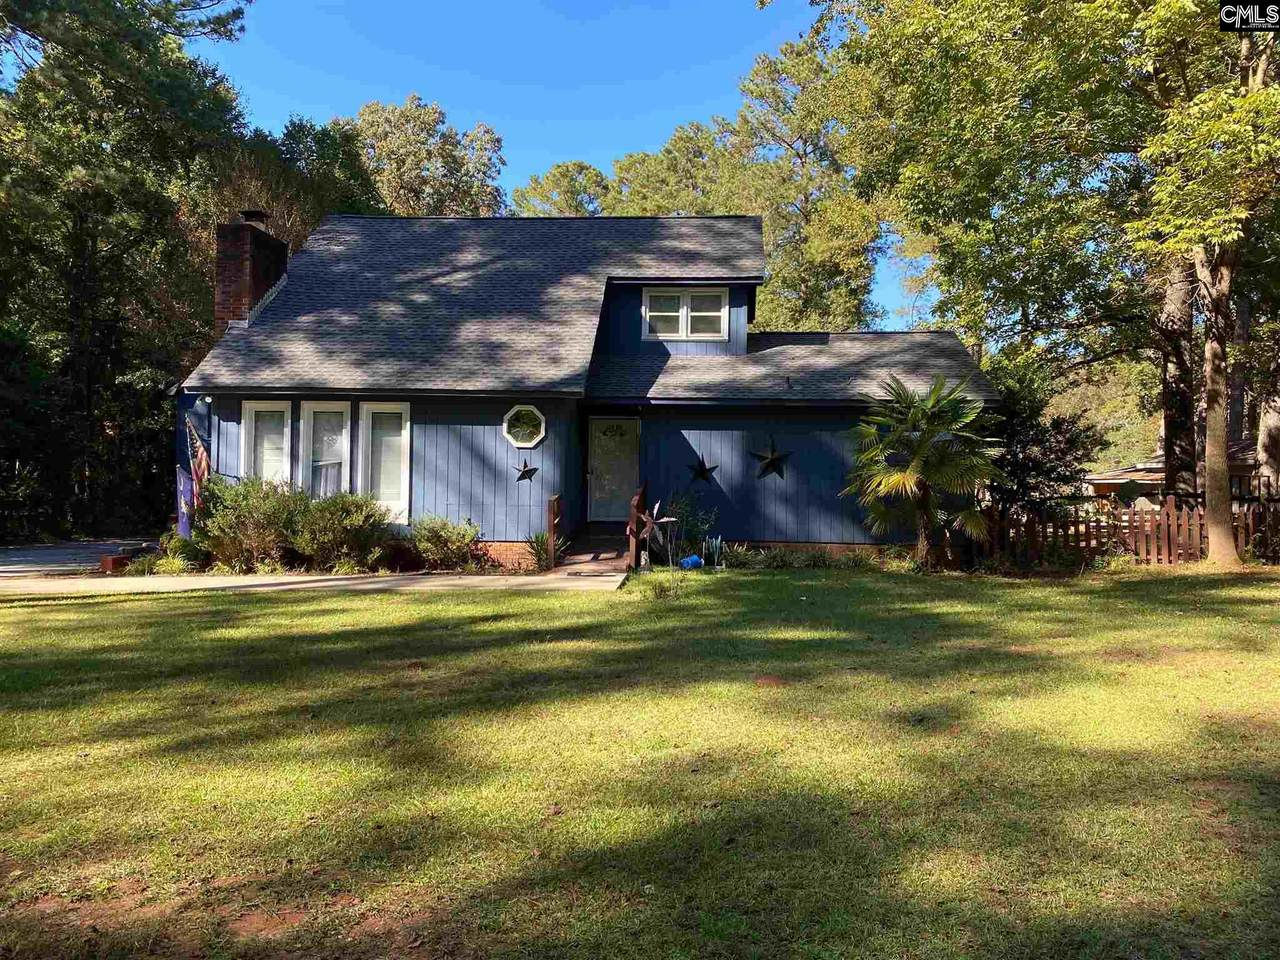 1000 Carrie Shealy Road - Photo 1